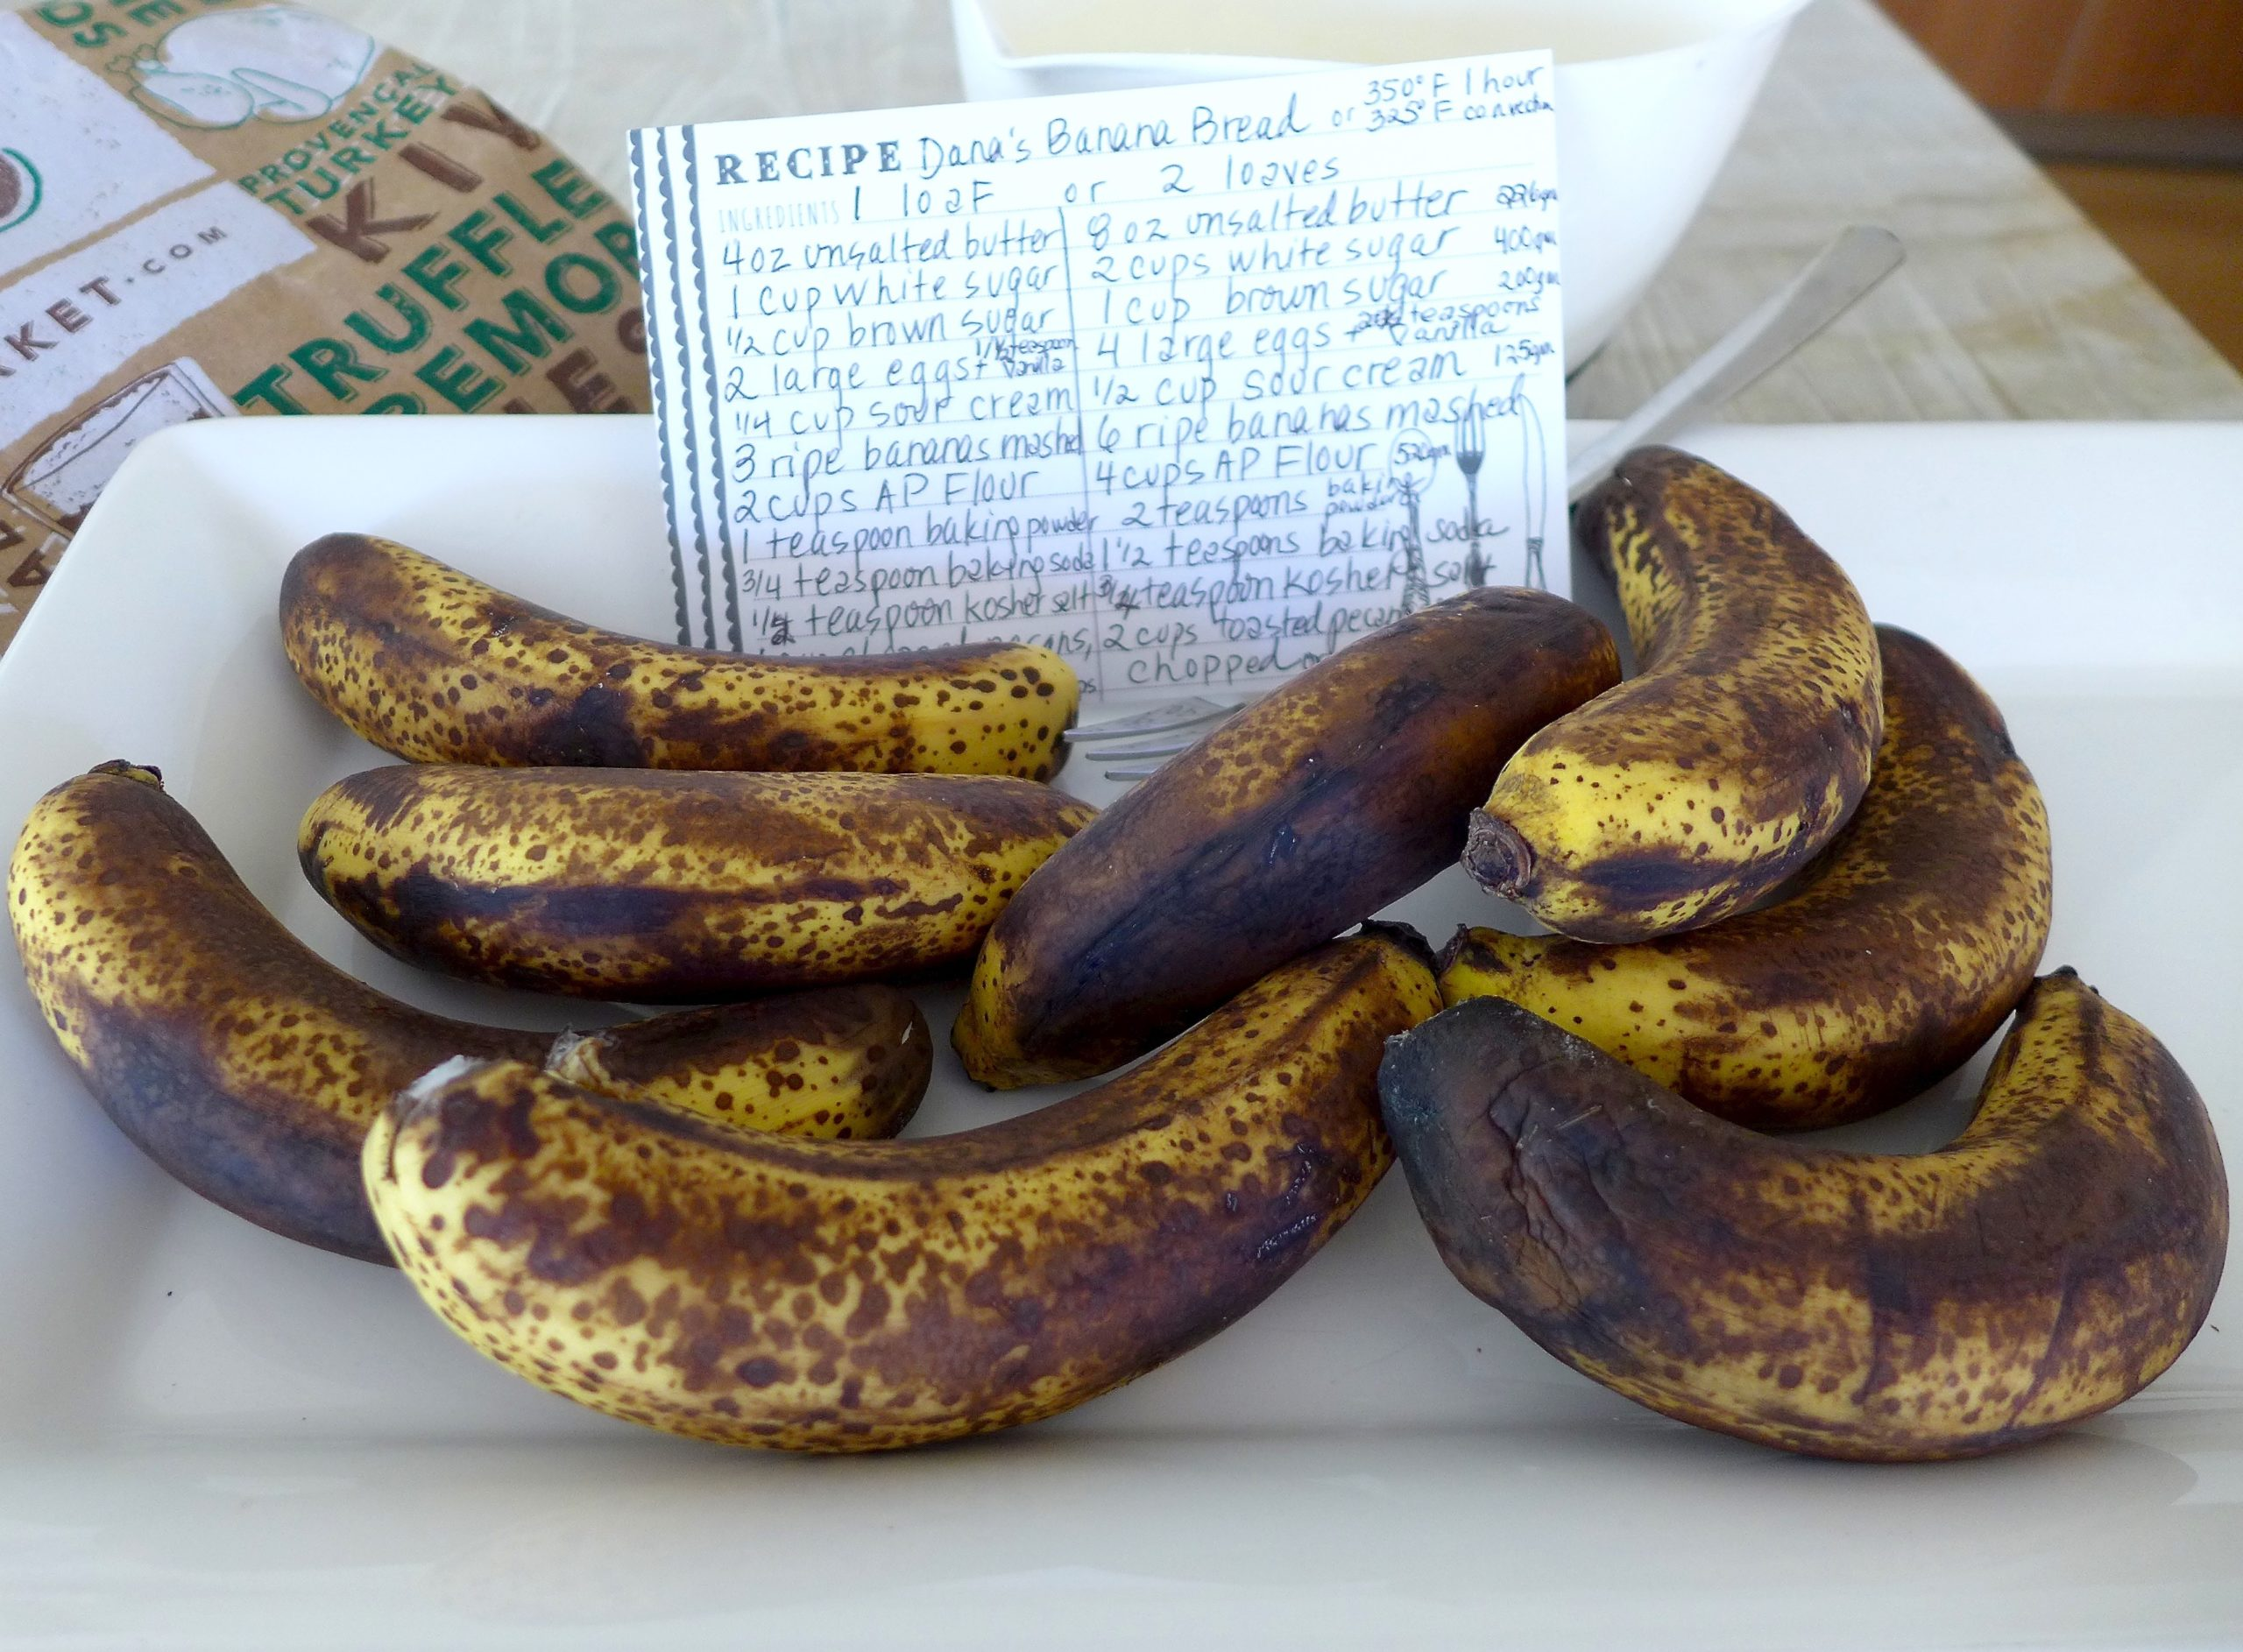 The riper the bananas, the better